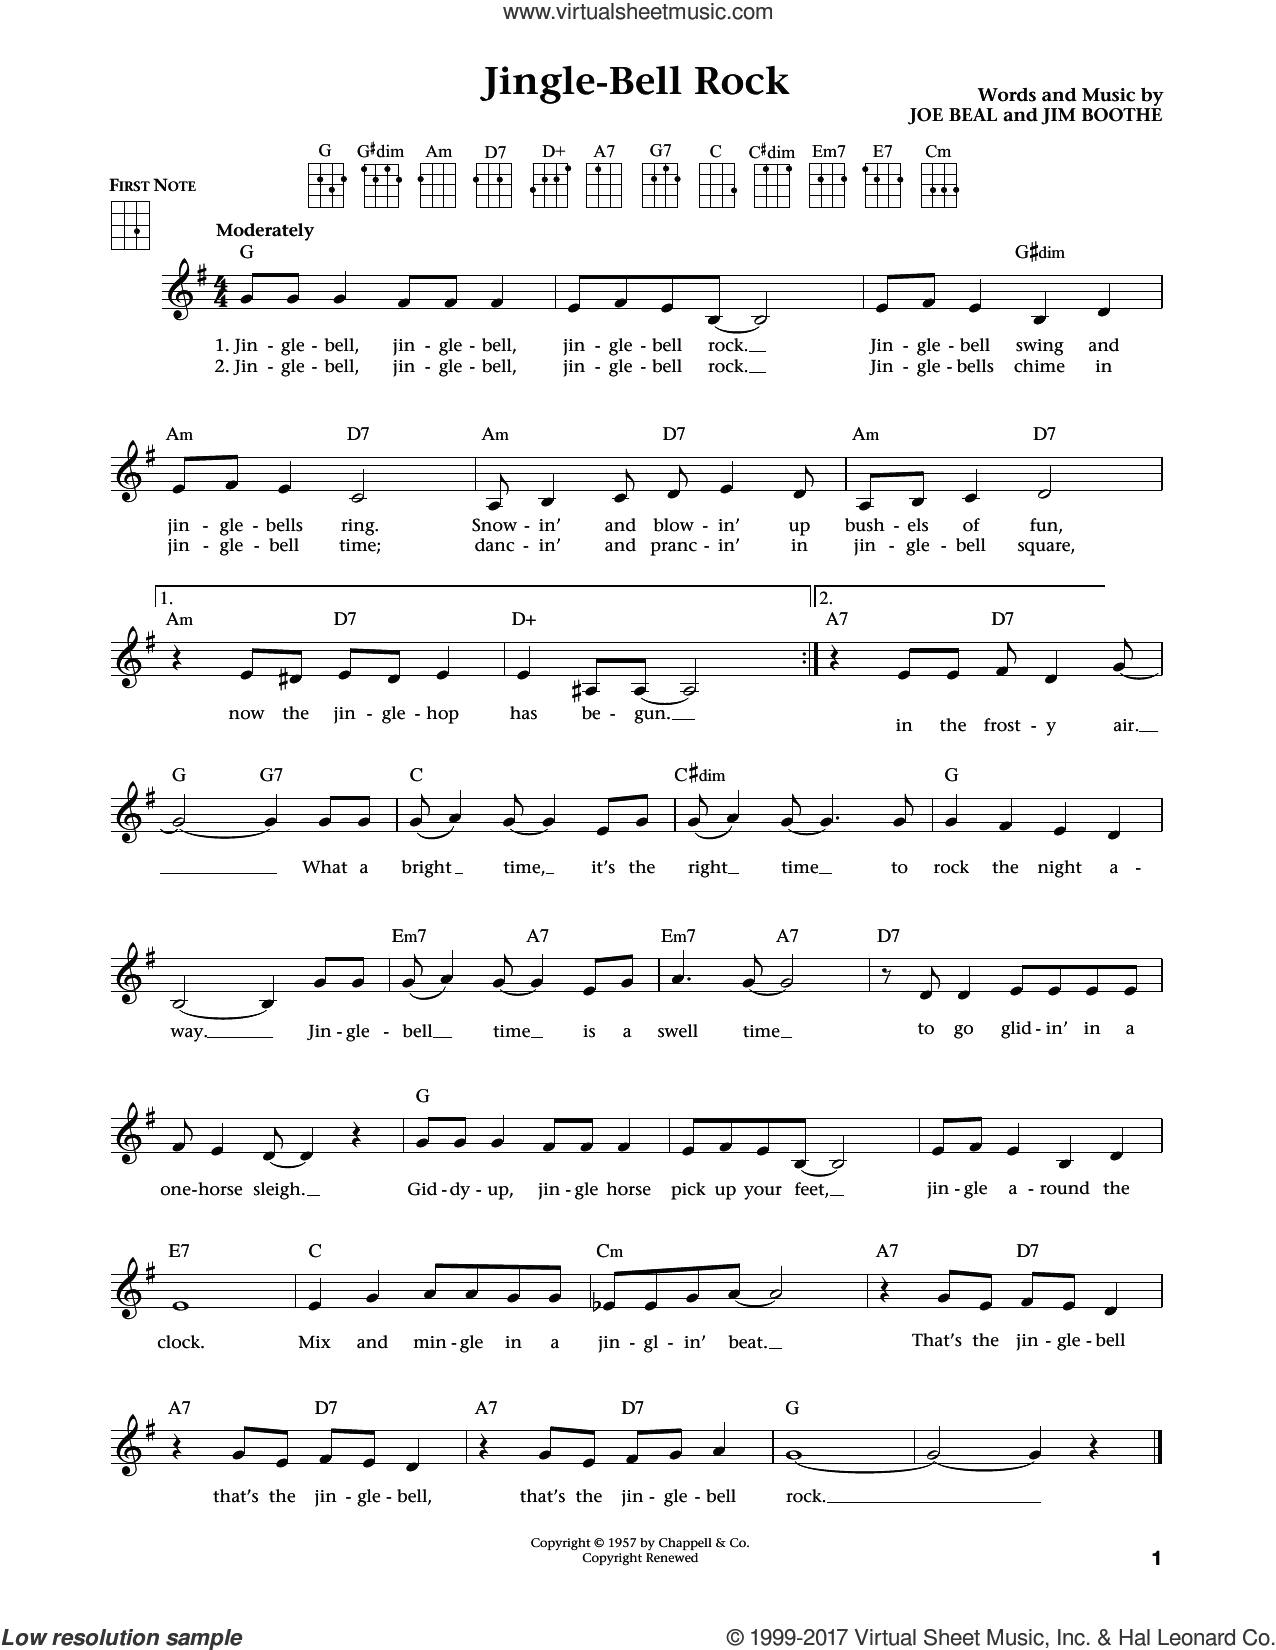 Jingle Bell Rock sheet music for ukulele by Joe Beal and Jim Boothe, intermediate skill level